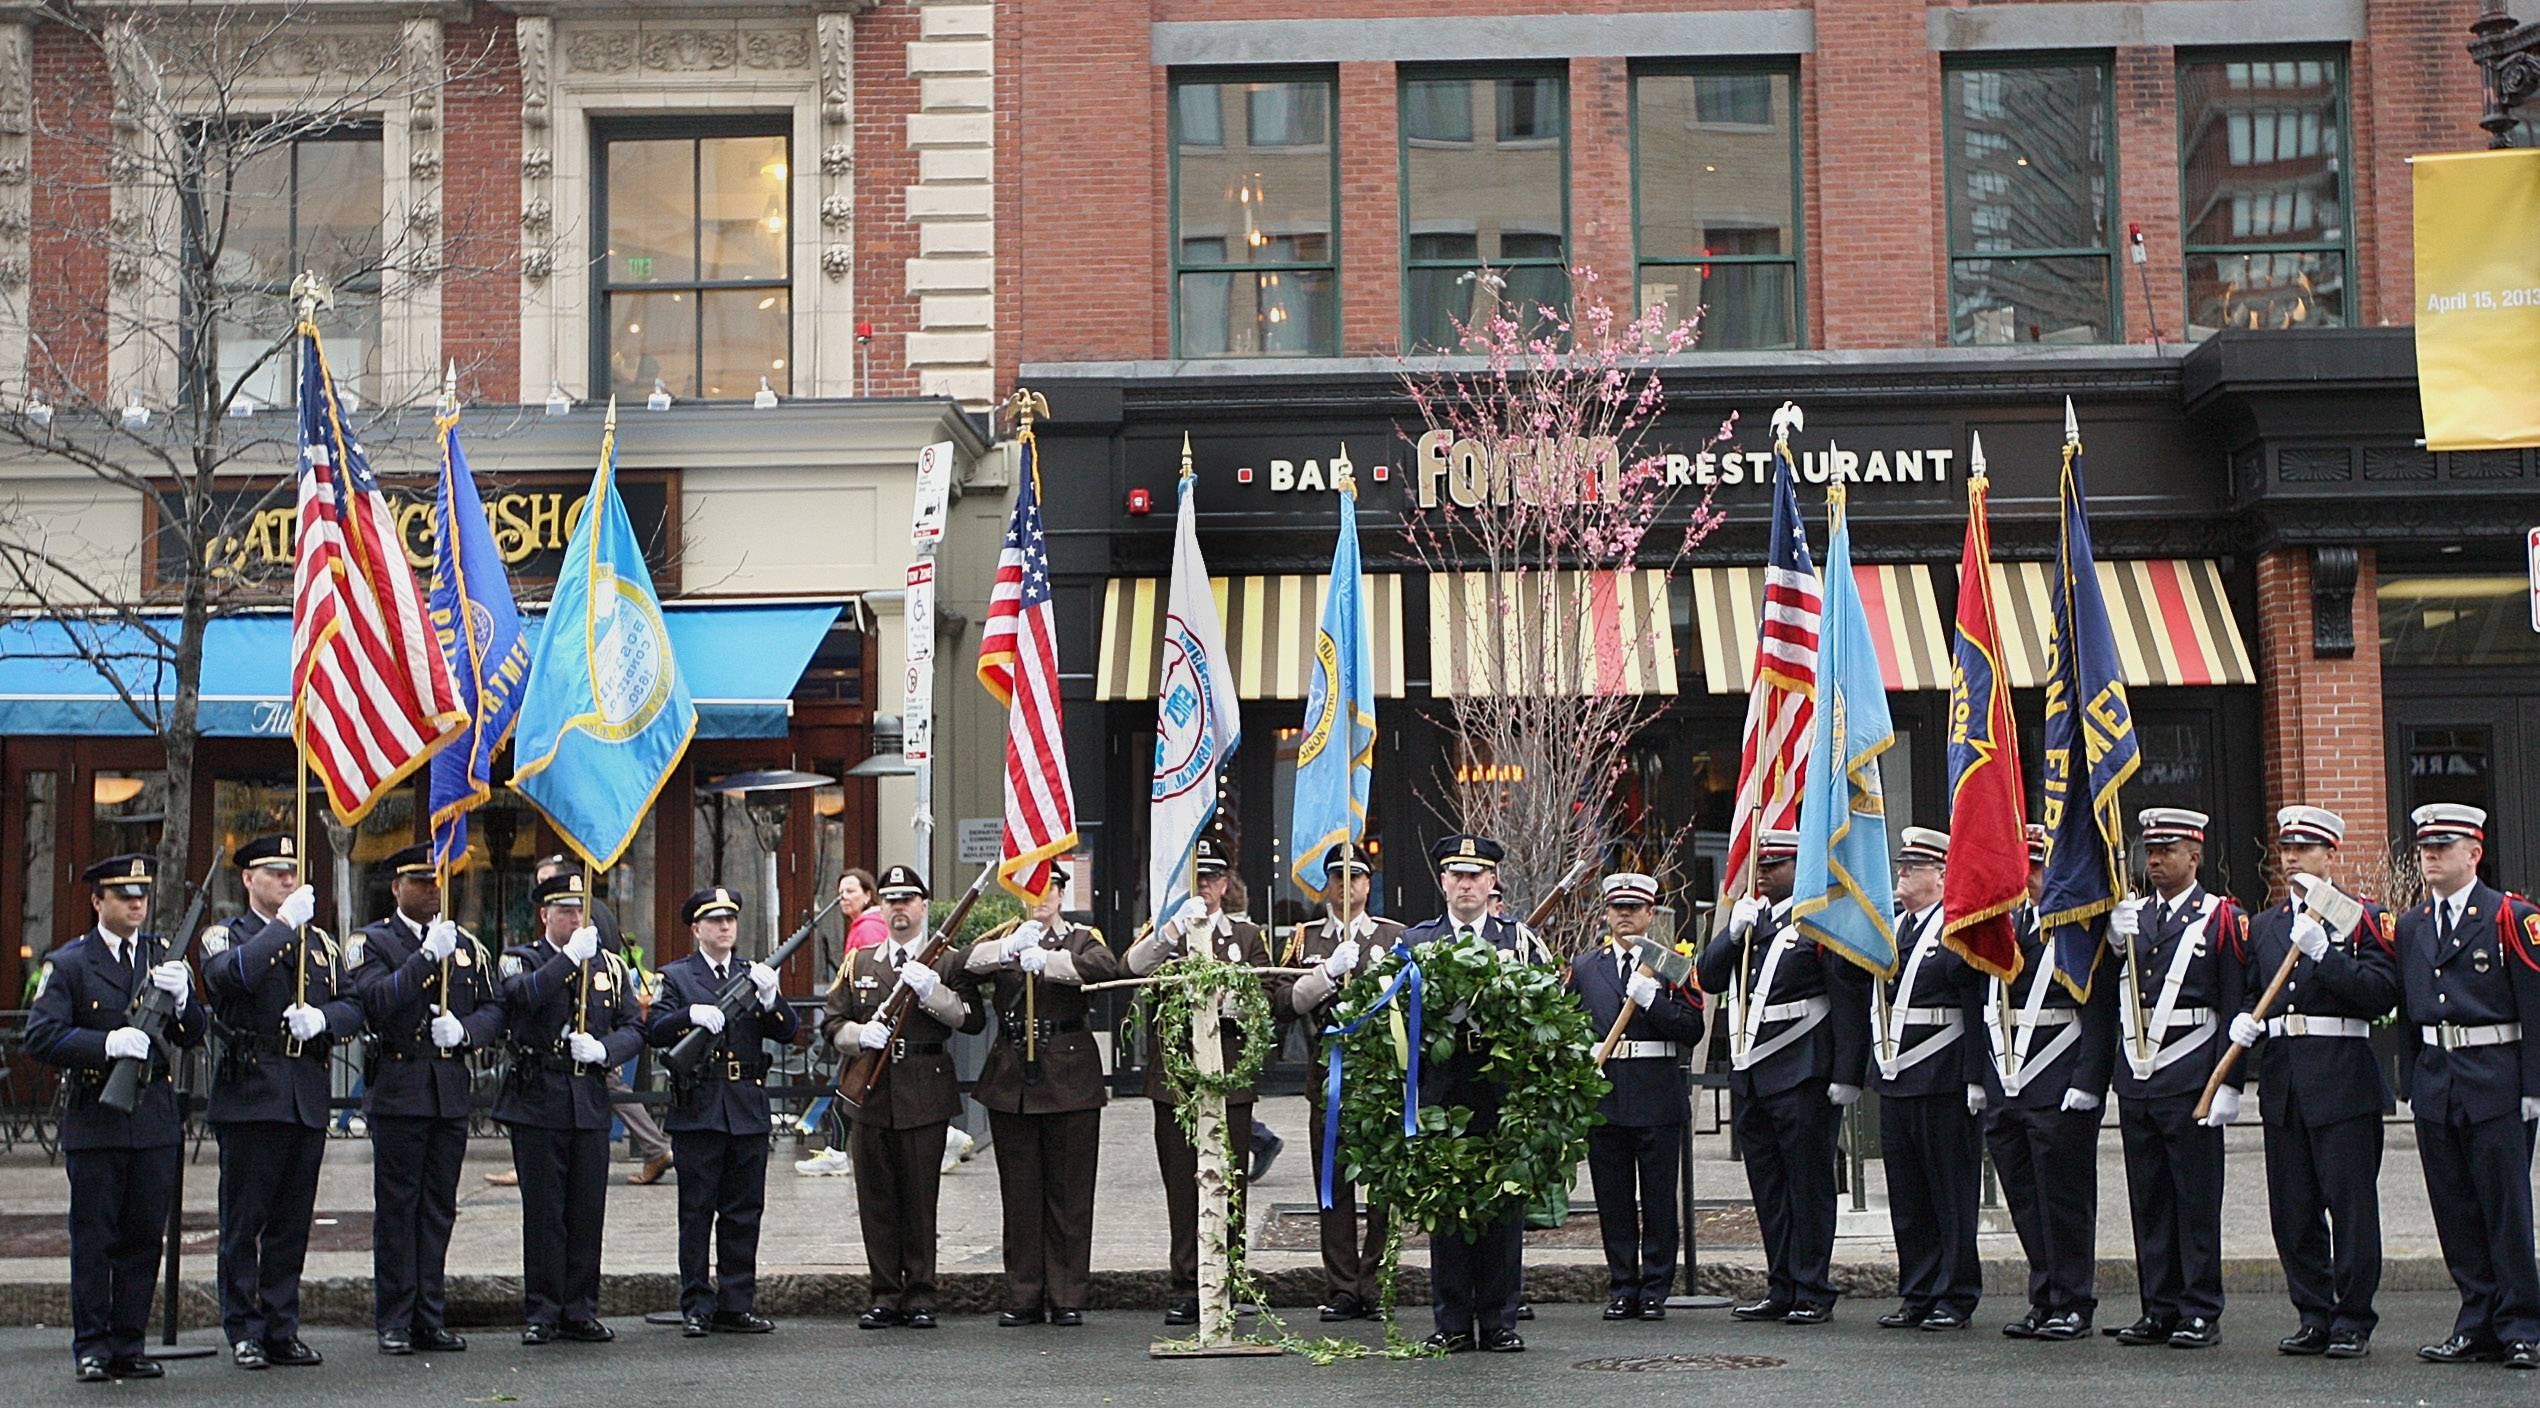 Honor Guard members line up Tuesday in front of the Forum Restaurant in Copley Square, where a wreath-laying ceremony was held to commemorate the one year anniversary of the Boston Marathon bombings.